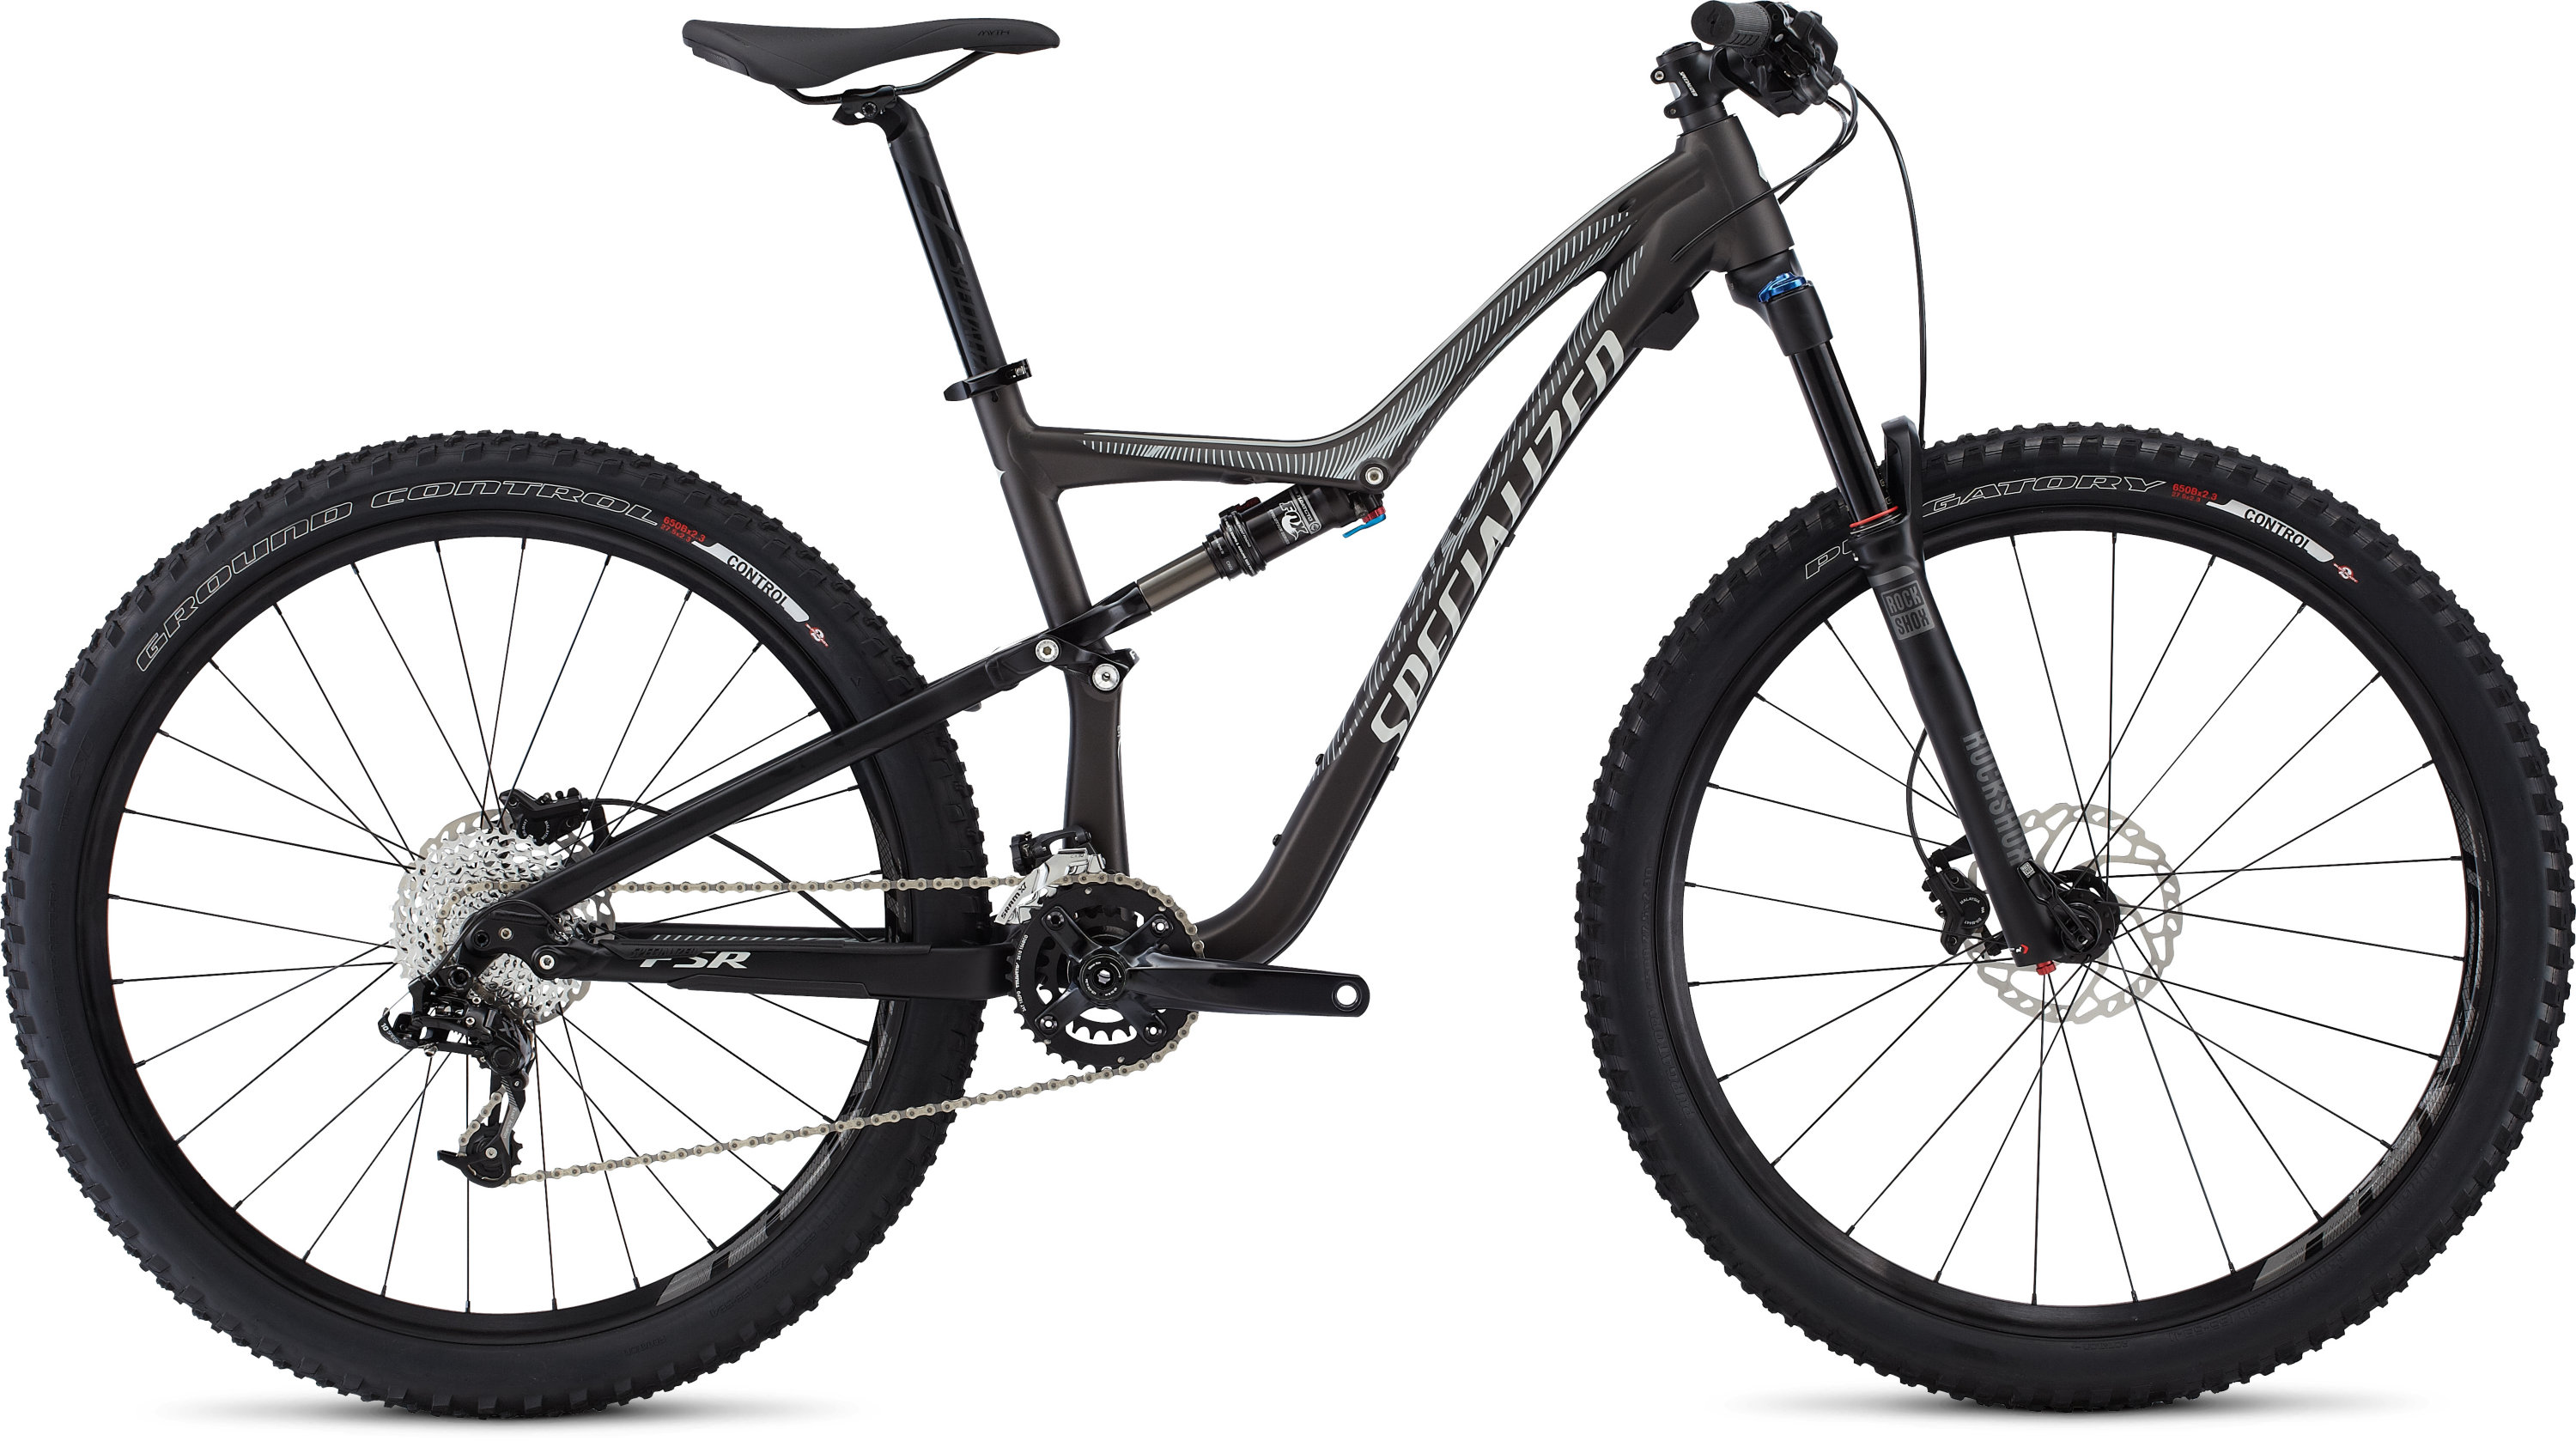 SPECIALIZED RUMOR FSR COMP 650B WRMCHAR/DRTYWHT/CHAR S - schneider-sports